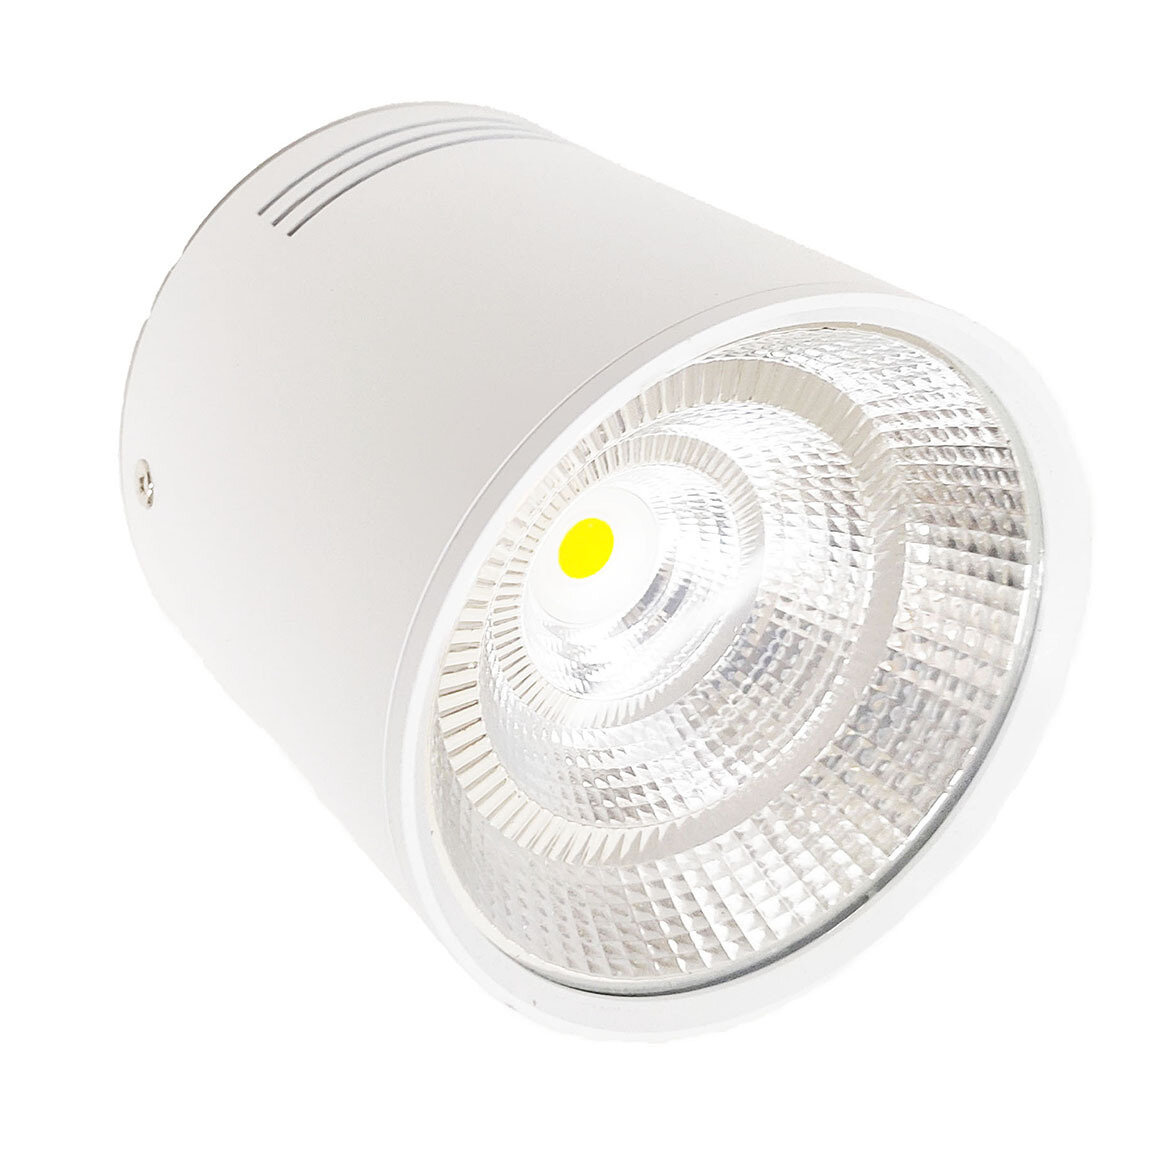 COB cylindrical surface mount Down light - White body